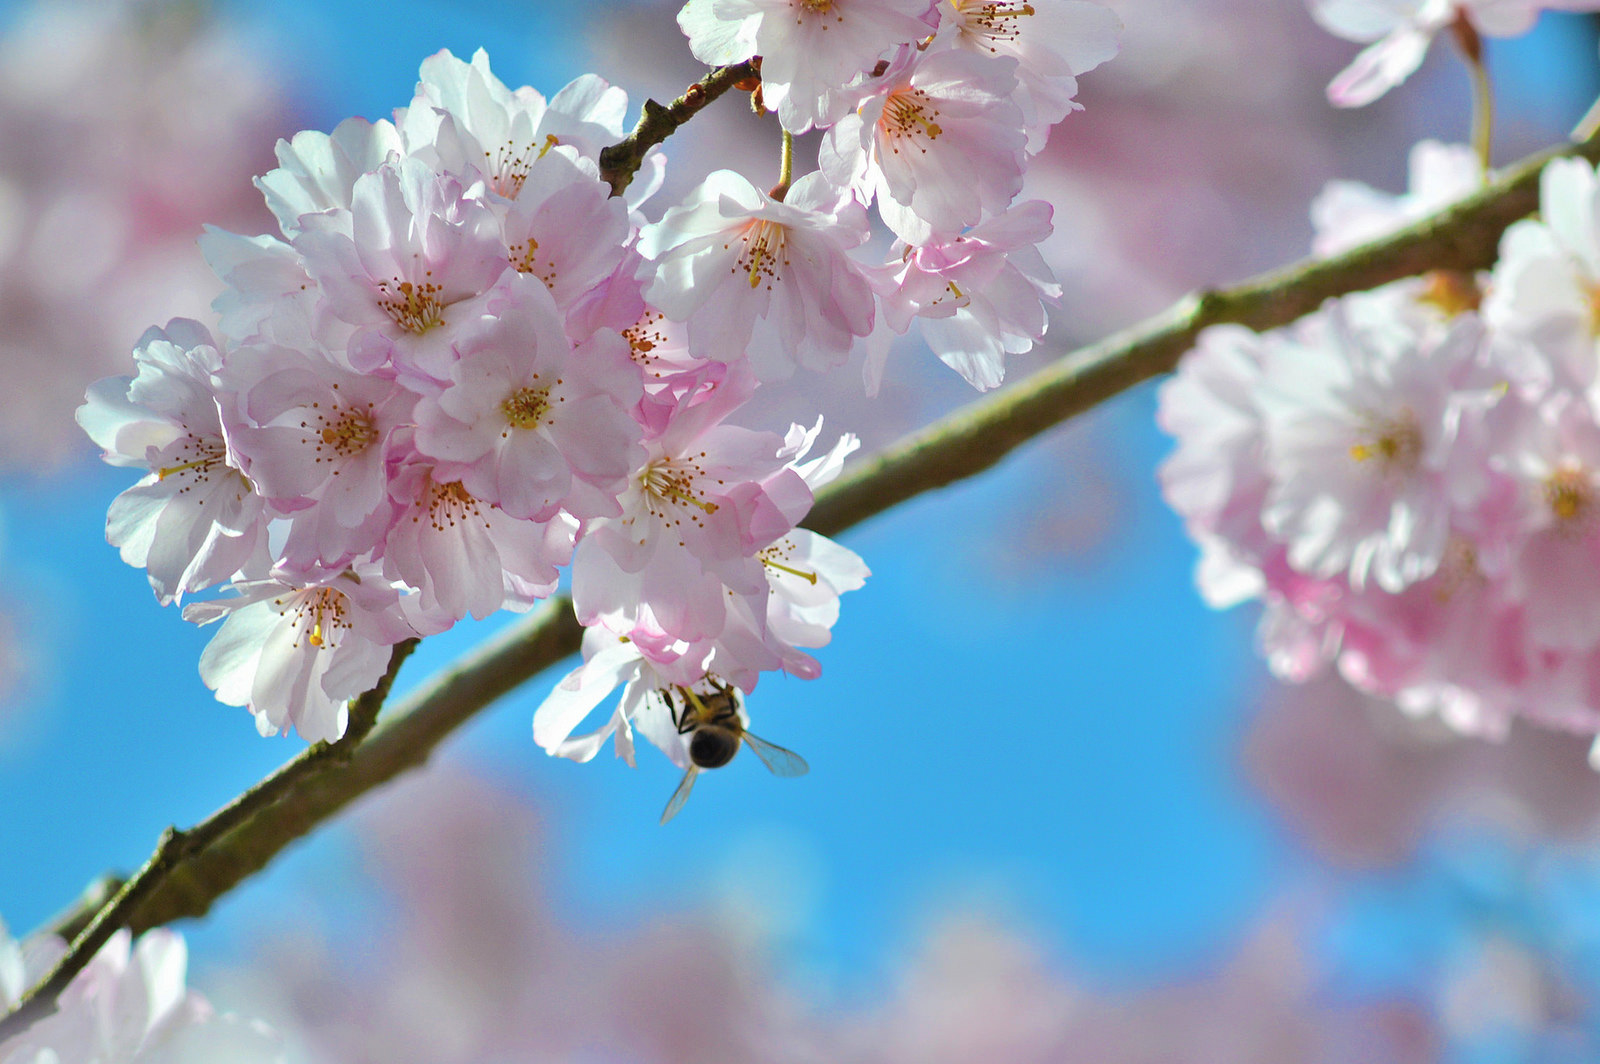 A bee enjoys the cherry blossoms near Amsterdam.